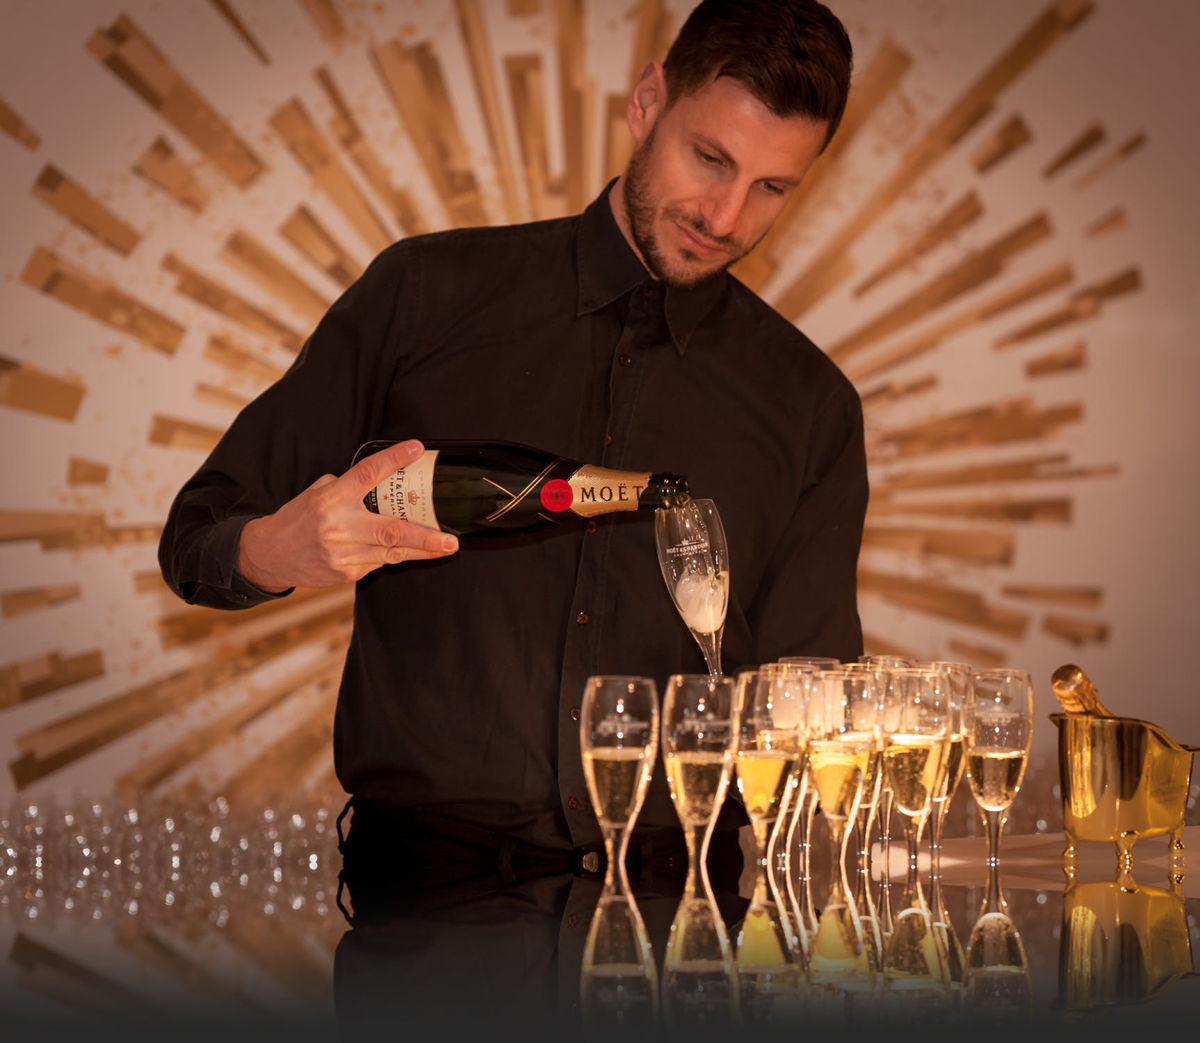 Man Pouring Champagne into Glasses